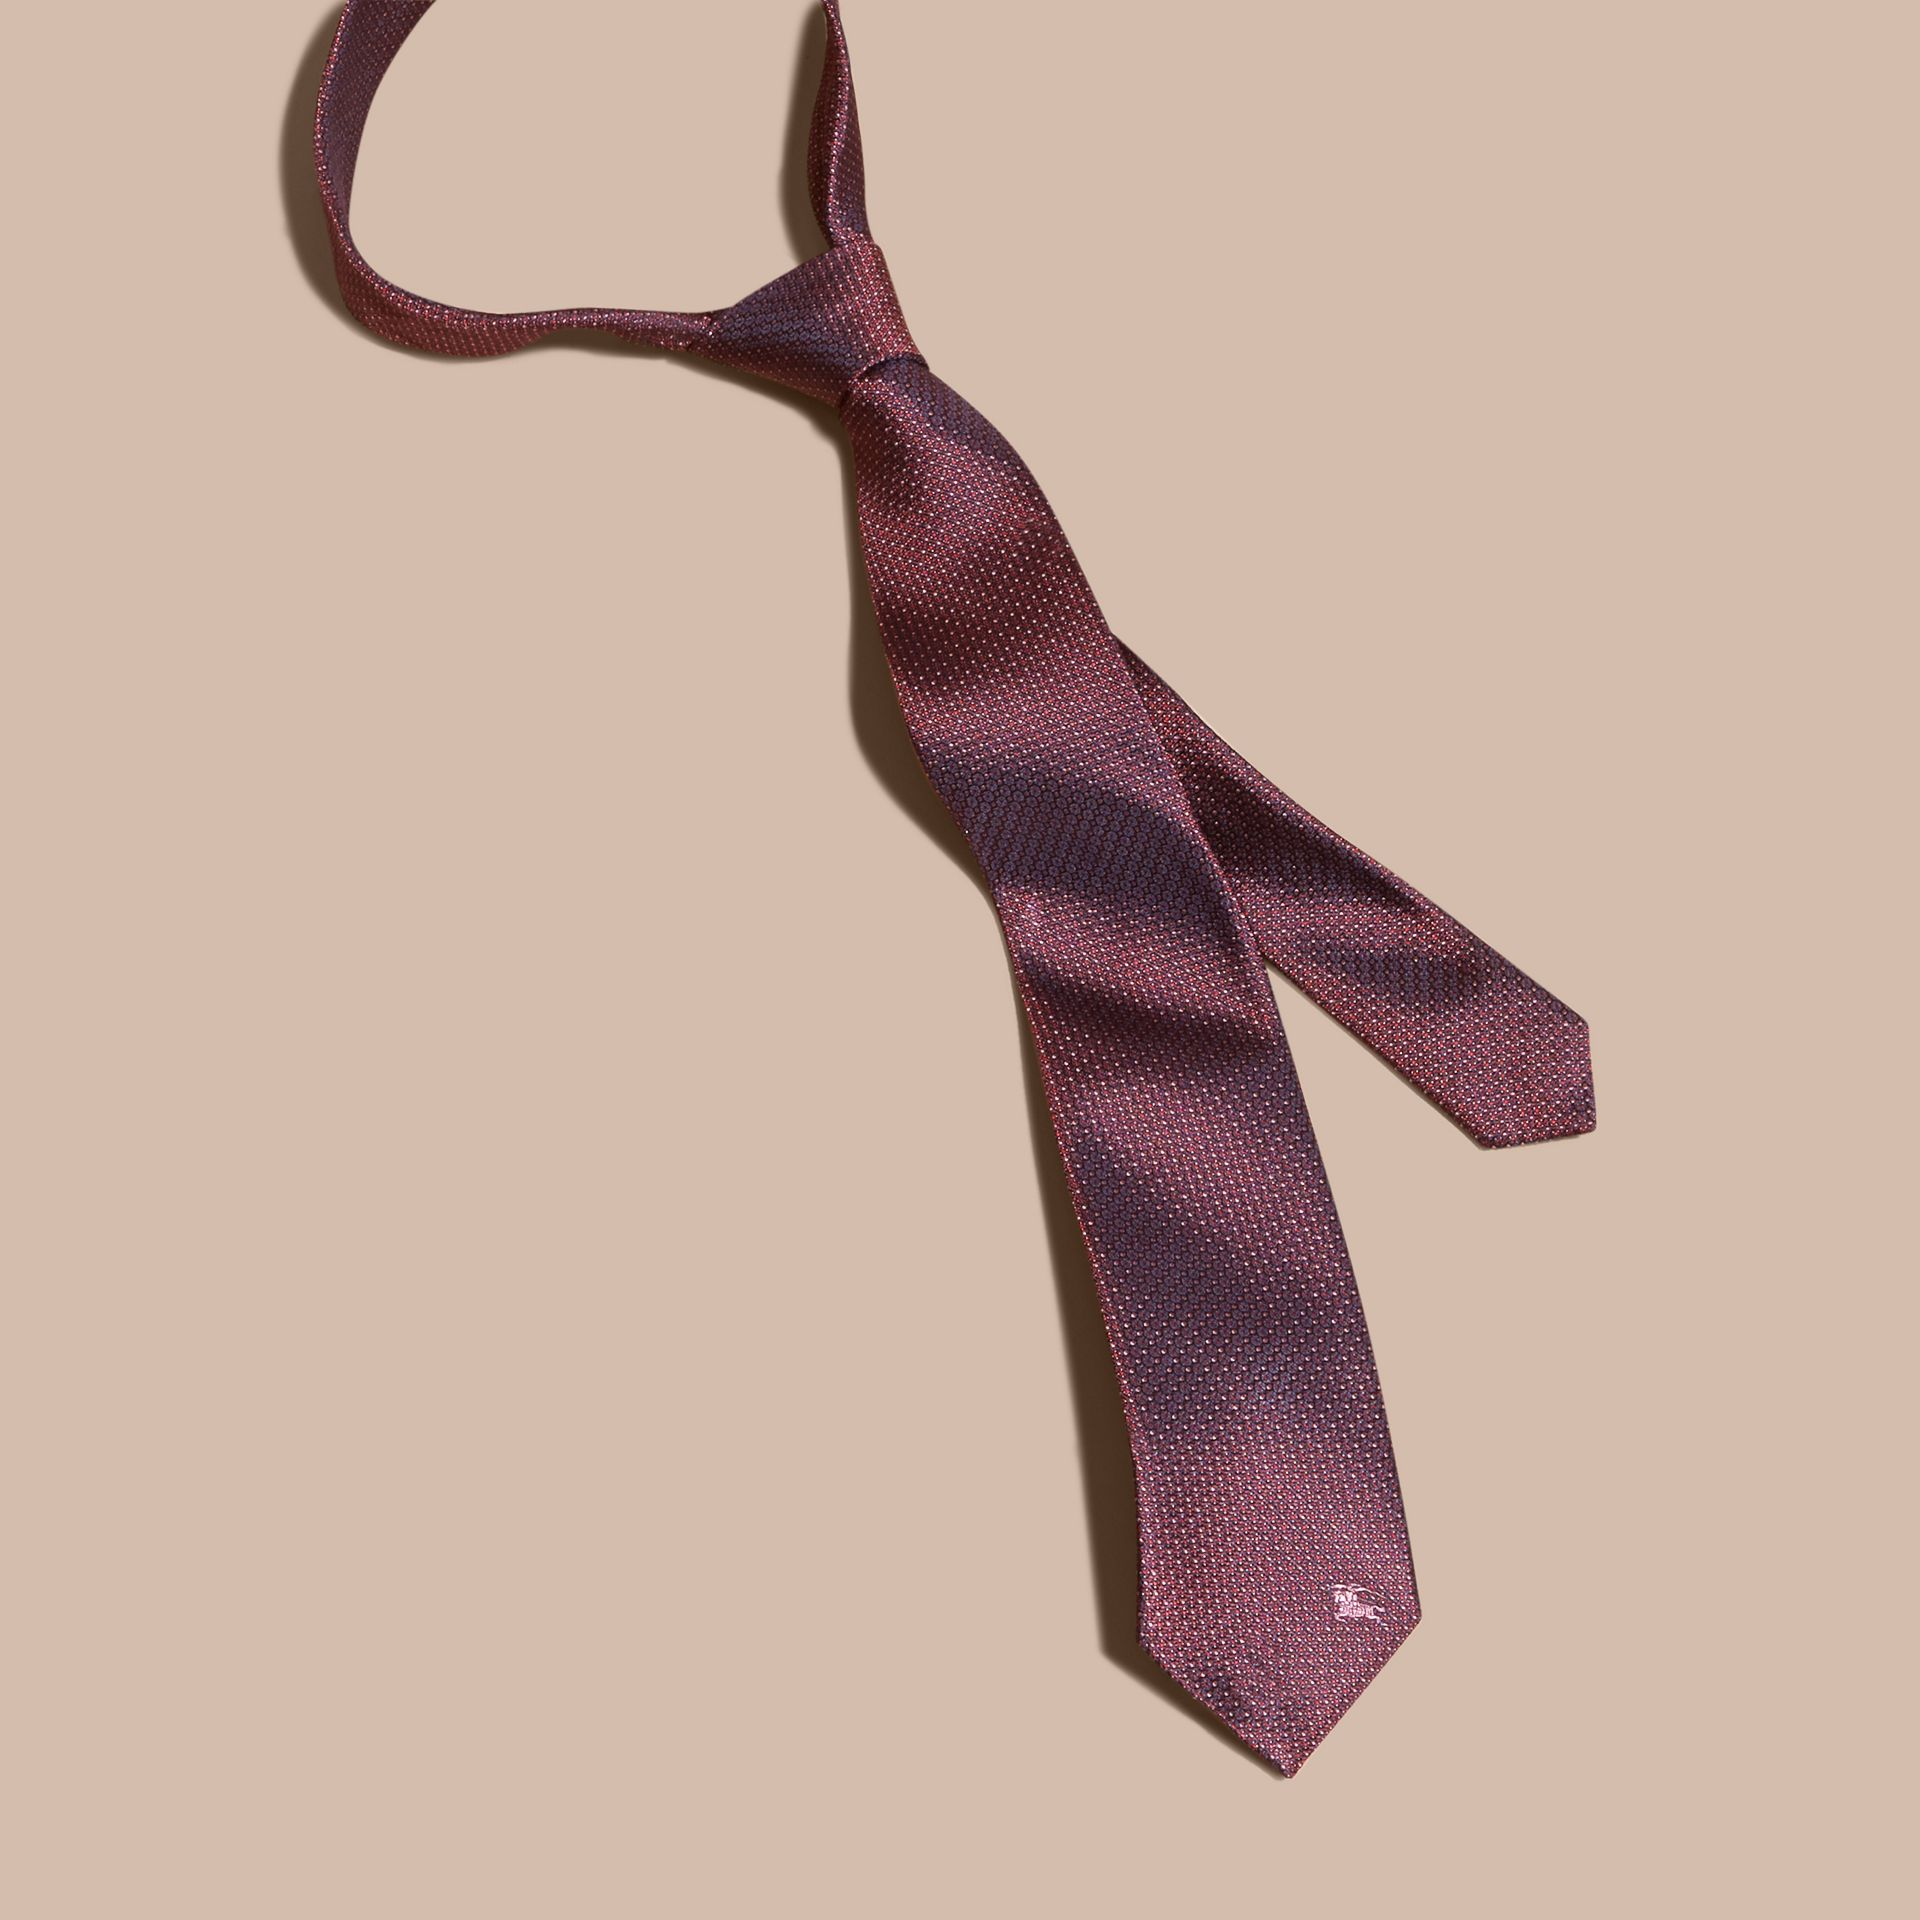 Modern Cut Patterned Silk Tie in Deep Claret - Men | Burberry - gallery image 5